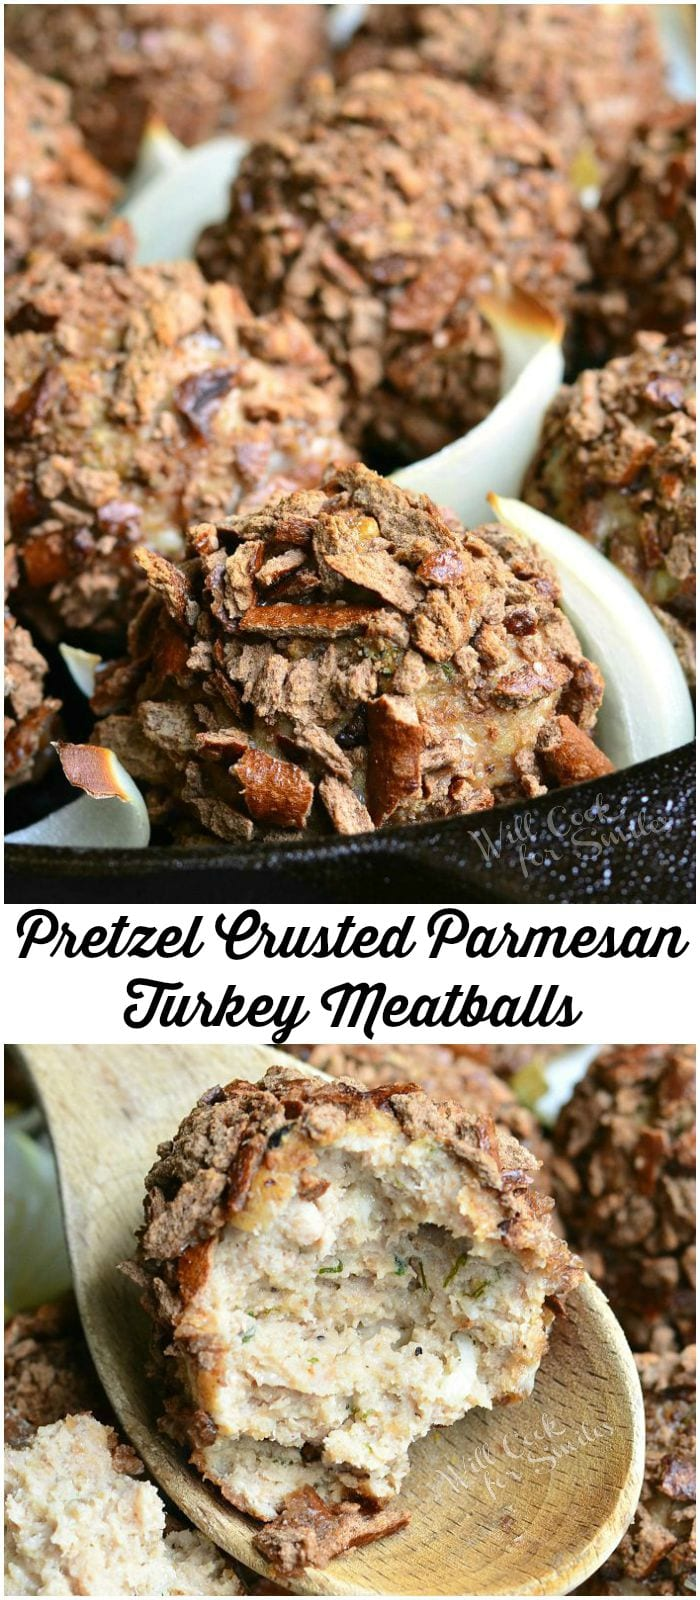 Two photos: Top photo is Pretzel Crusted Parmesan Turkey Meatballs and slices of onion in a black skillet. Bottom photo is half a Pretzel Crusted Parmesan Turkey Meatball placed in a wooden spoon.